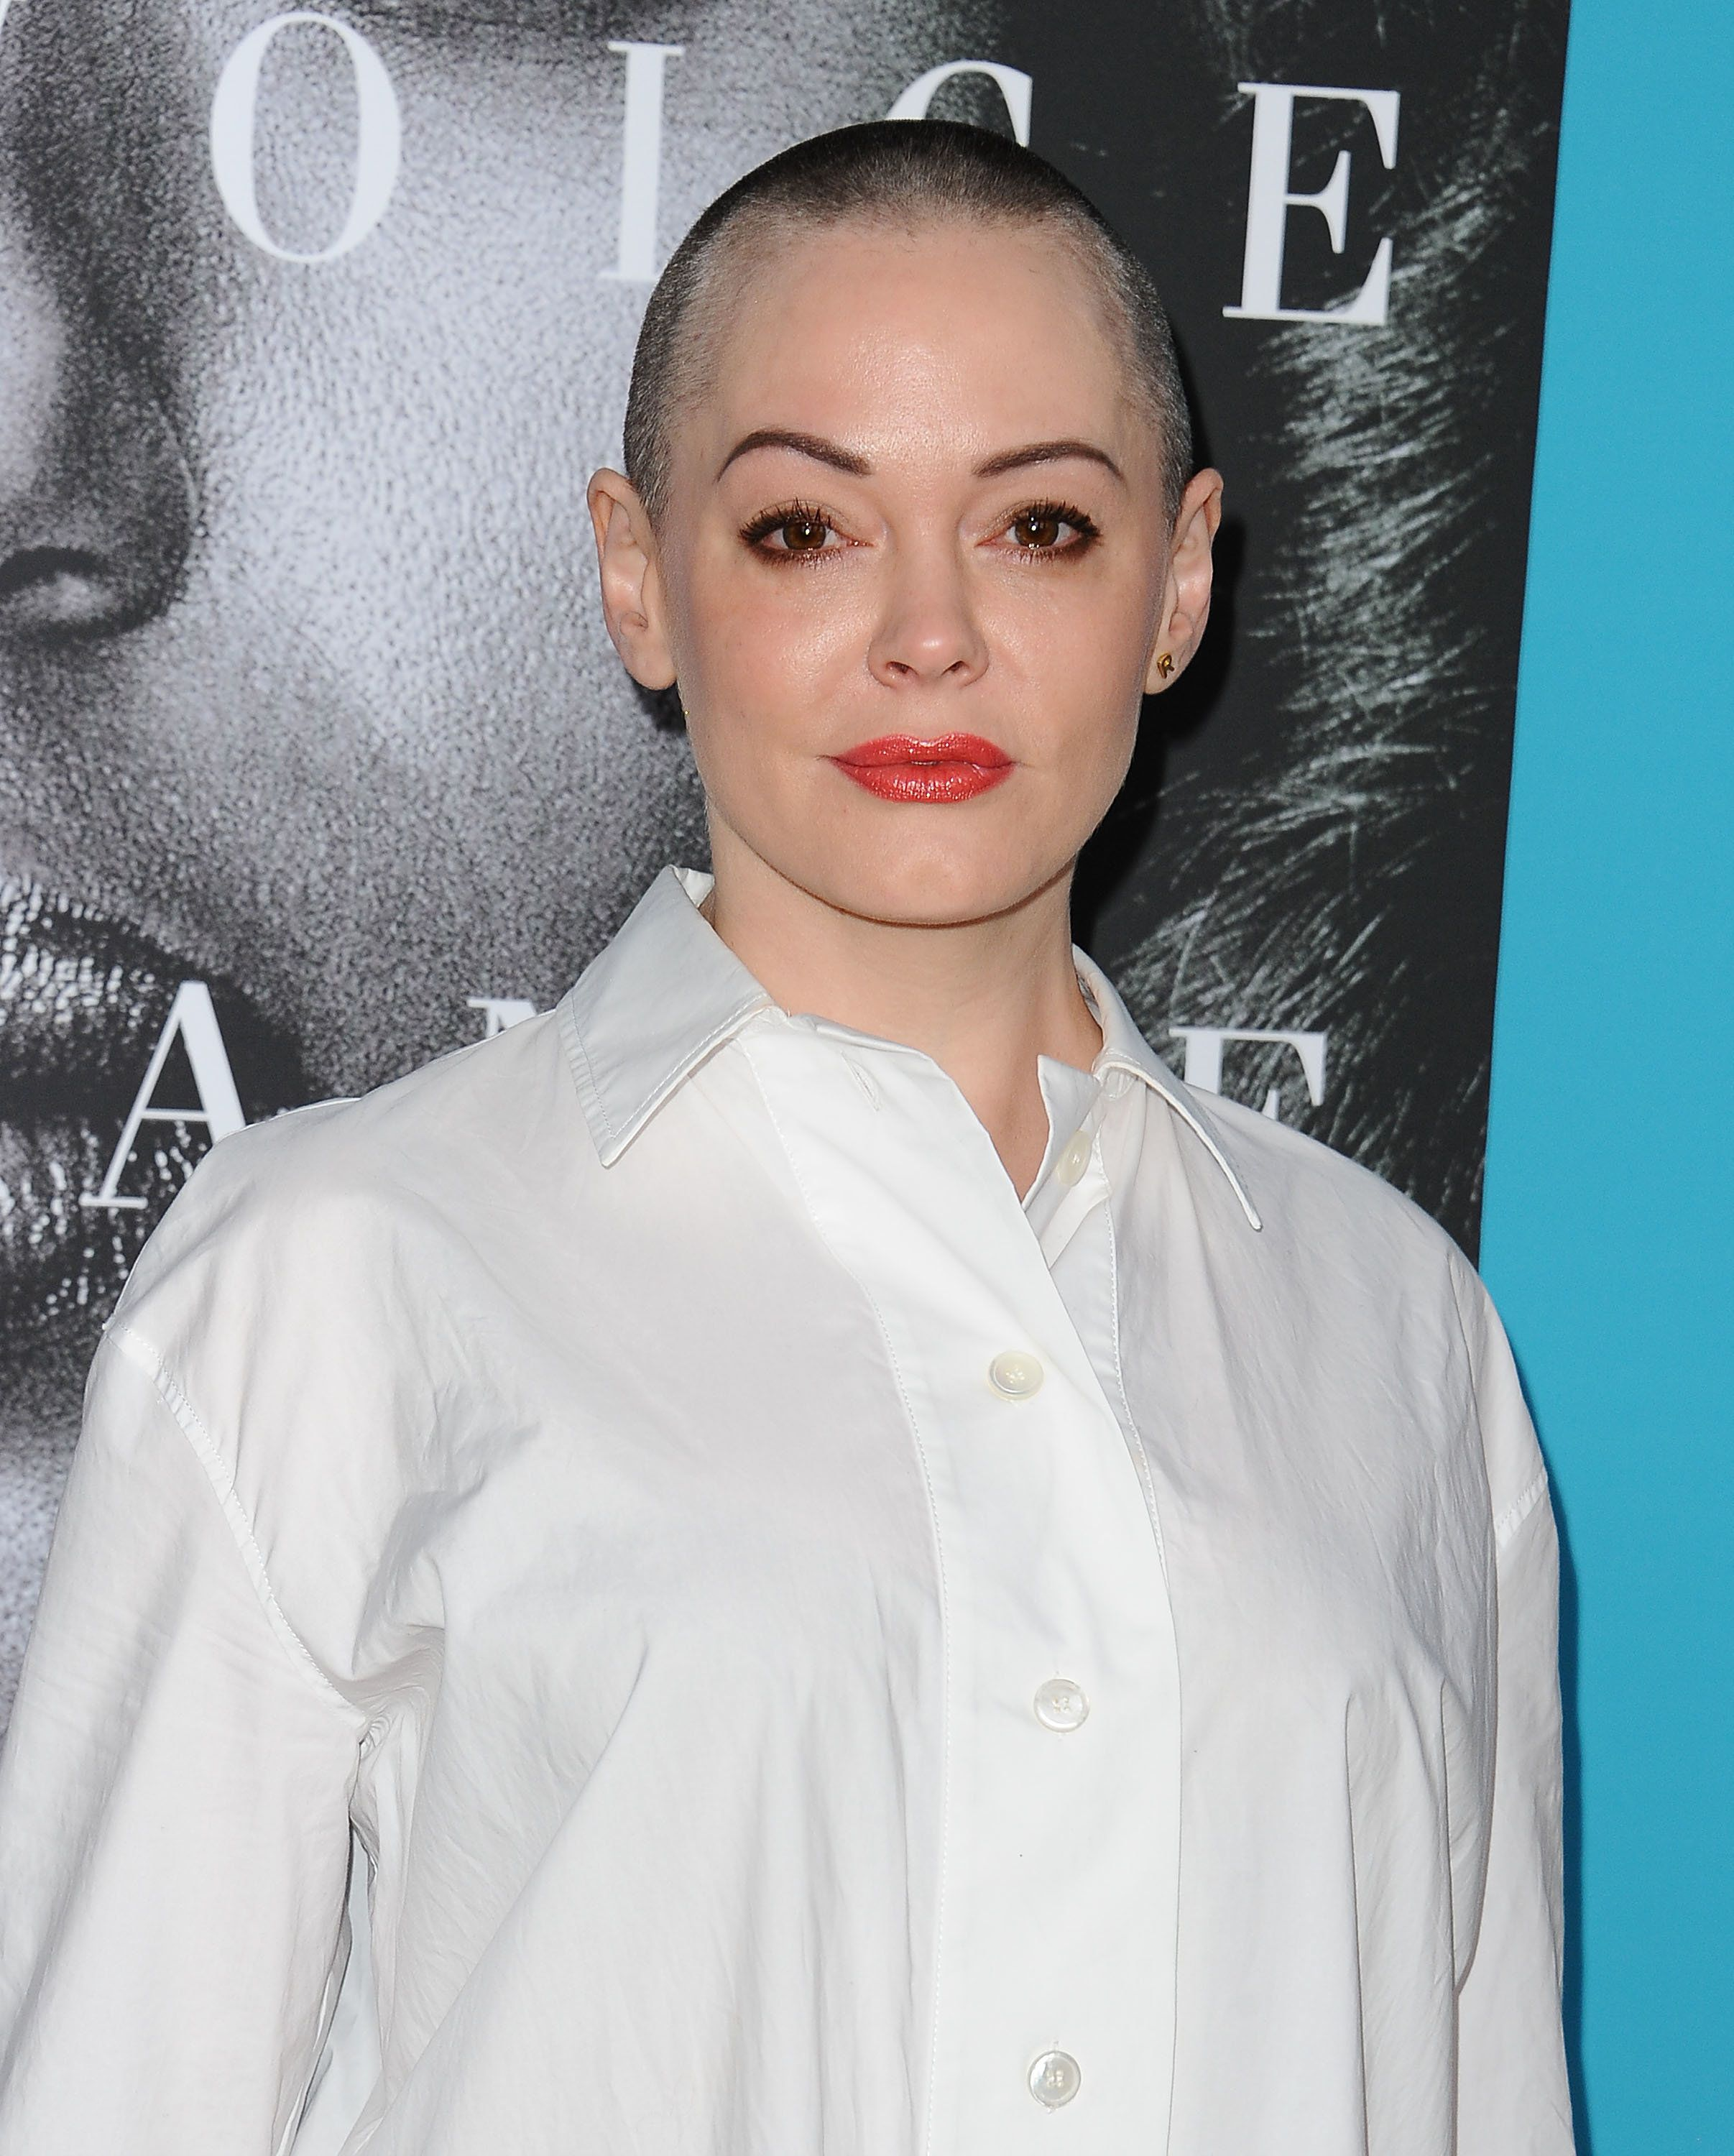 Rose McGowan suspended from Twitter after Ben Affleck tweet